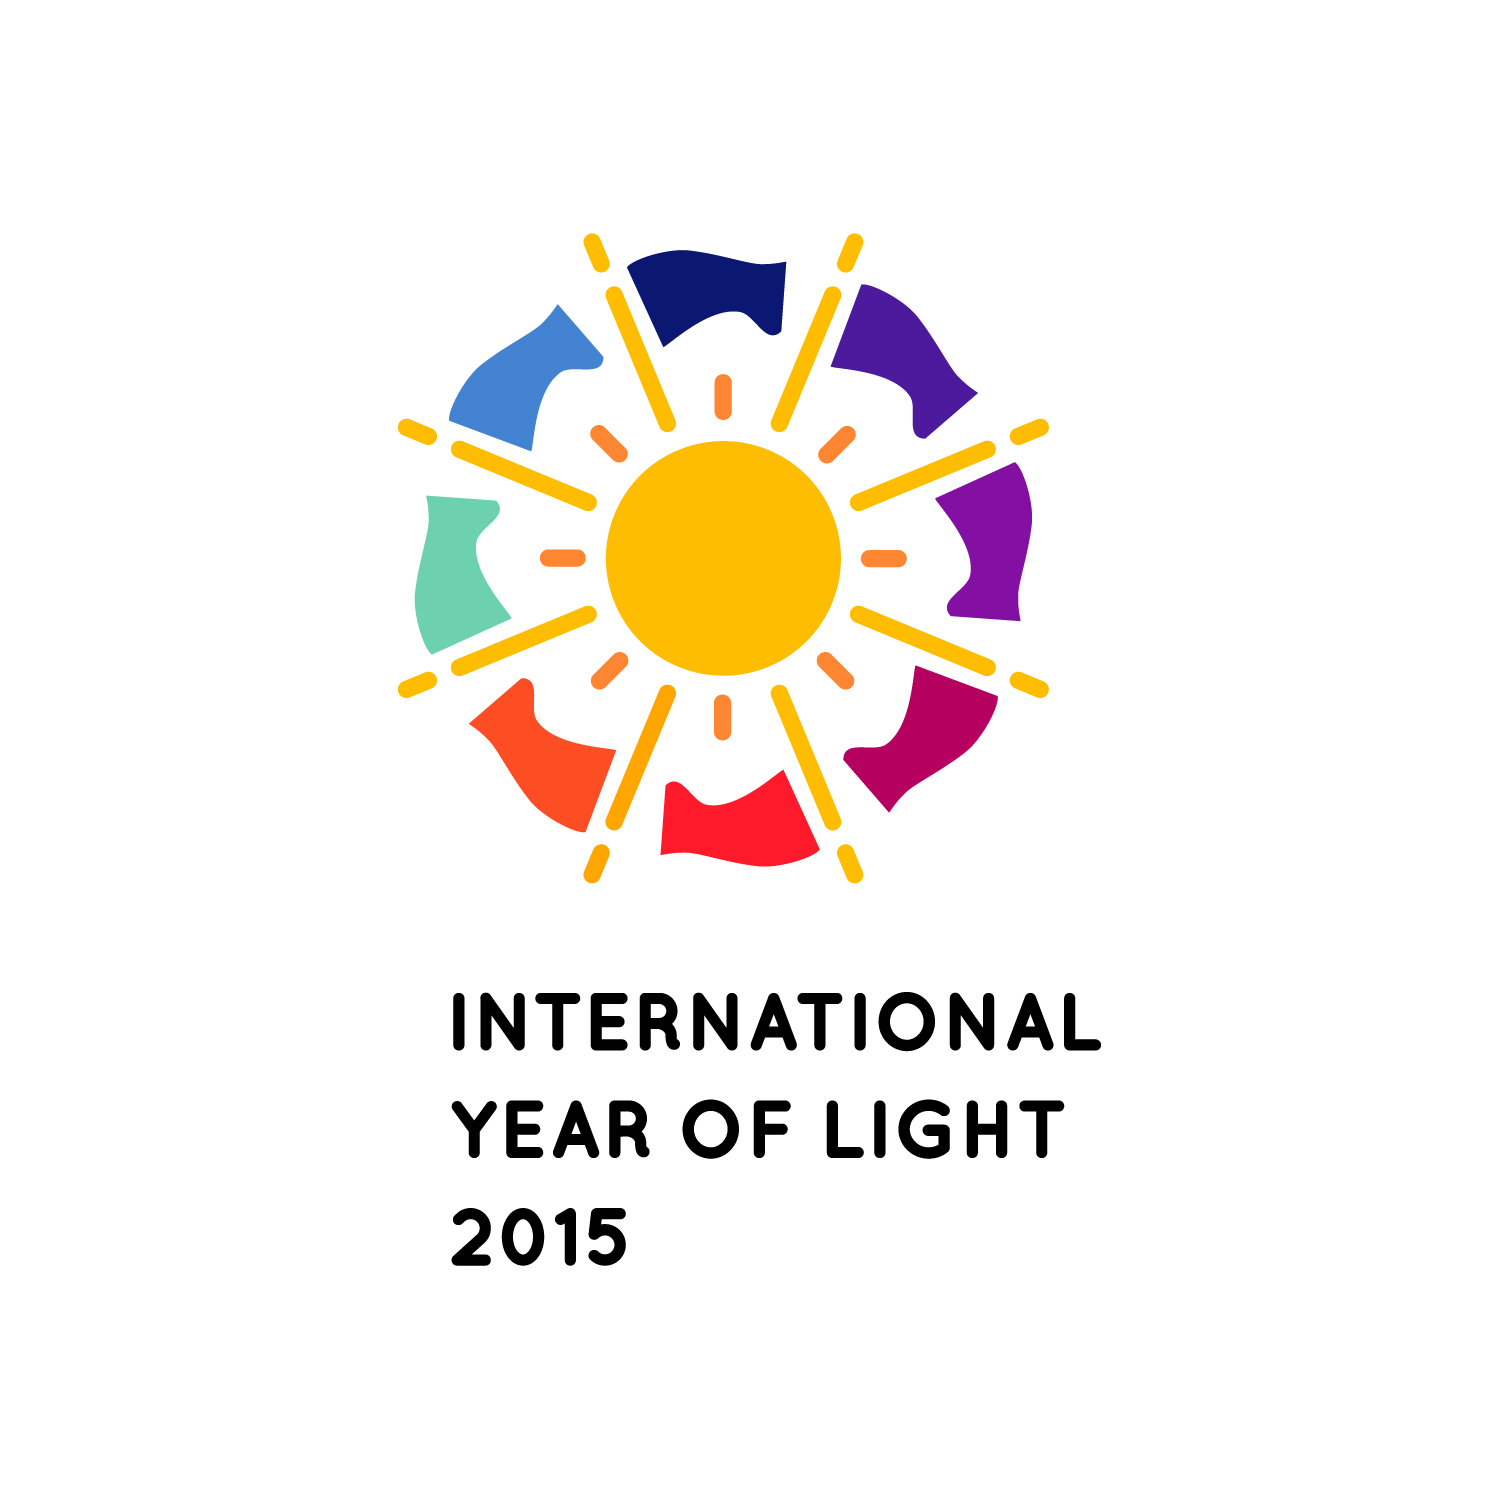 Year of Light 2015